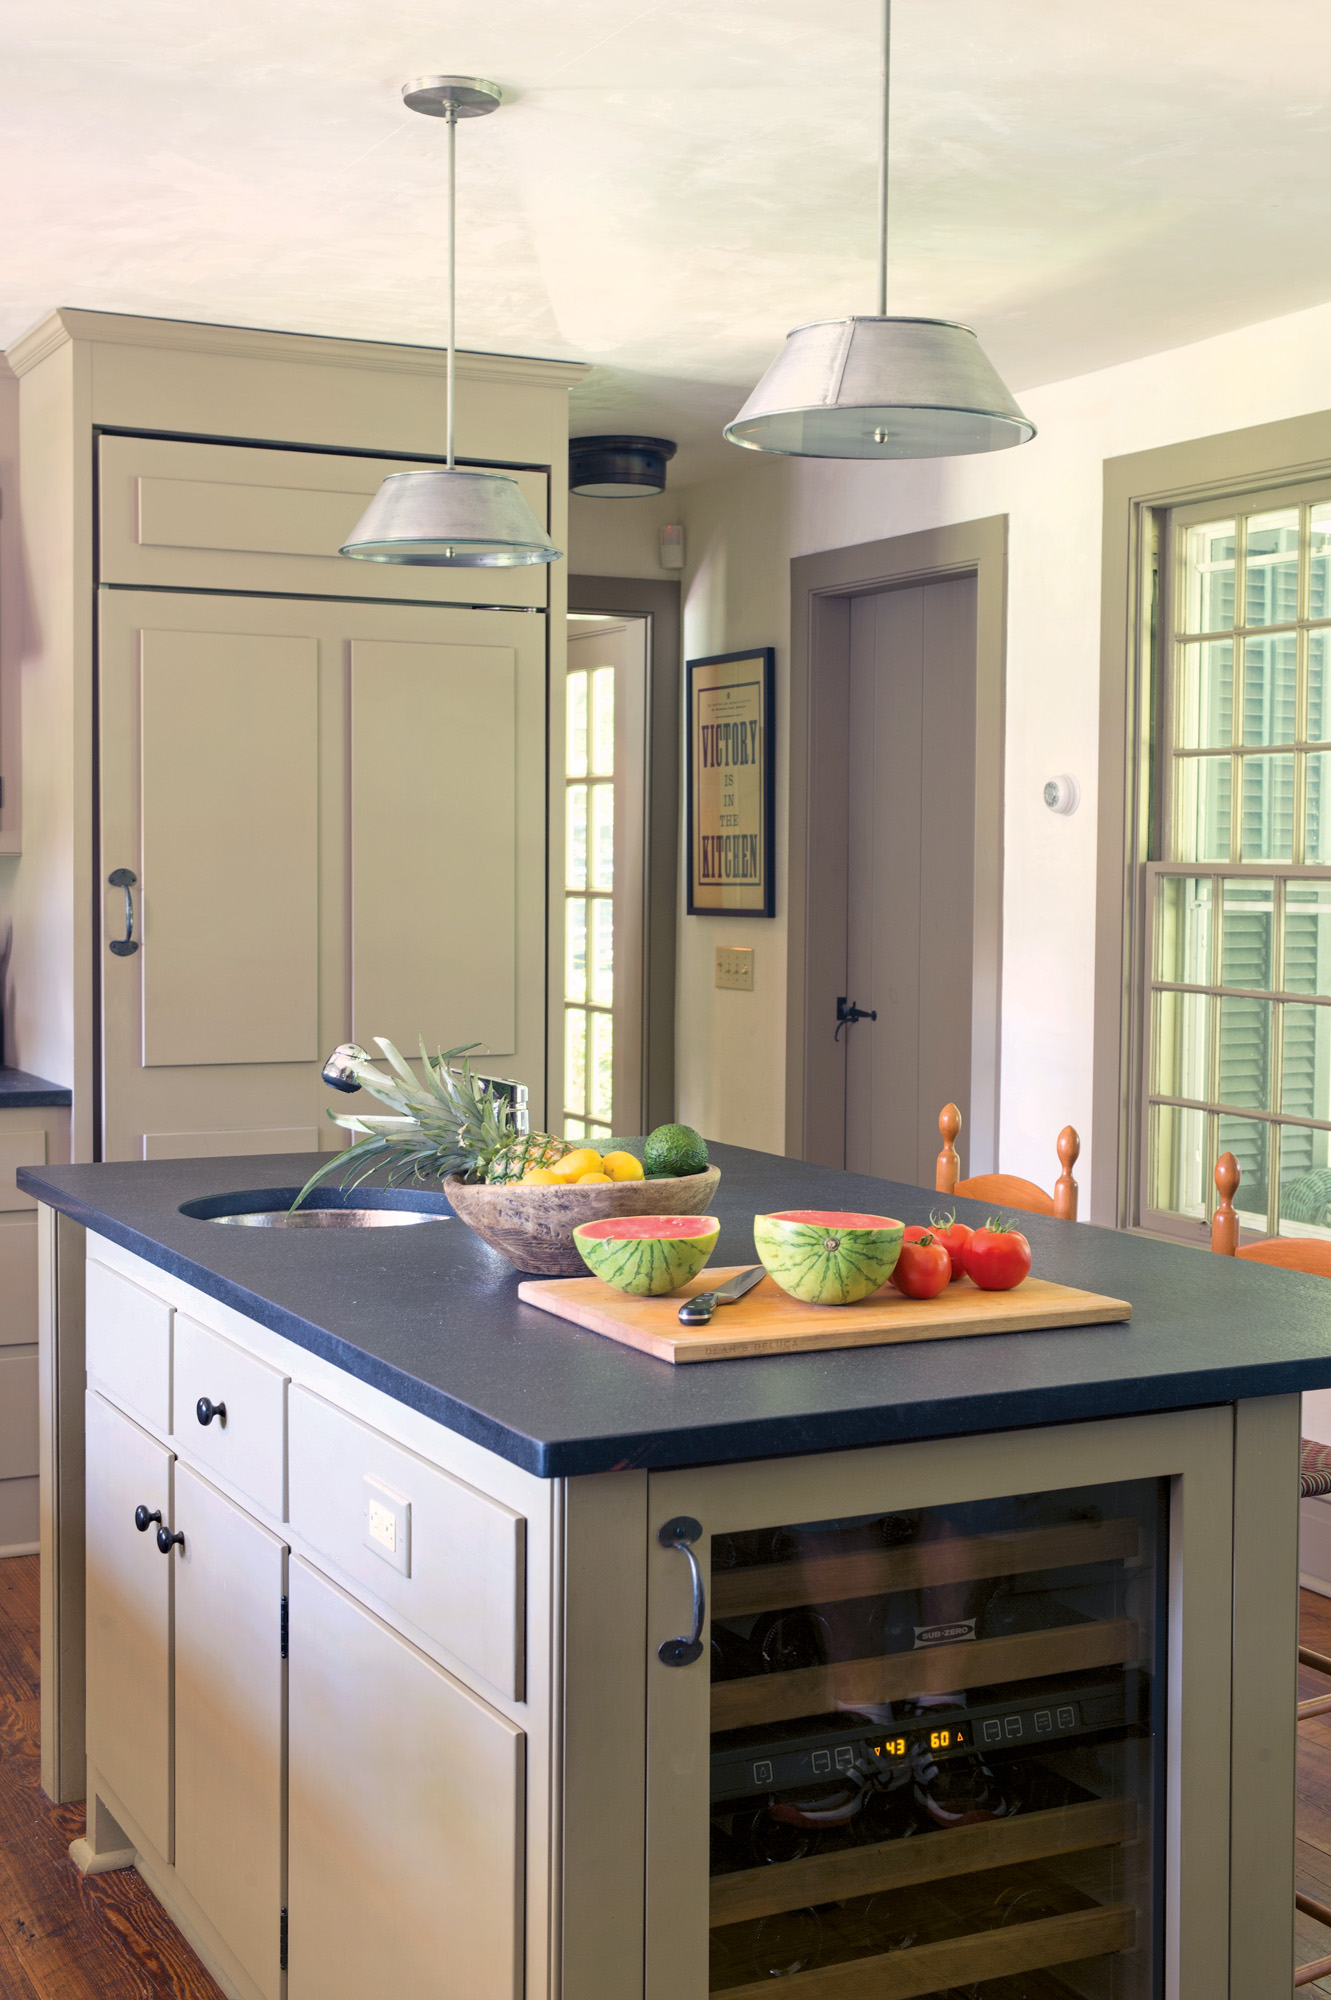 A True New Kitchen Restoration Design For The Vintage